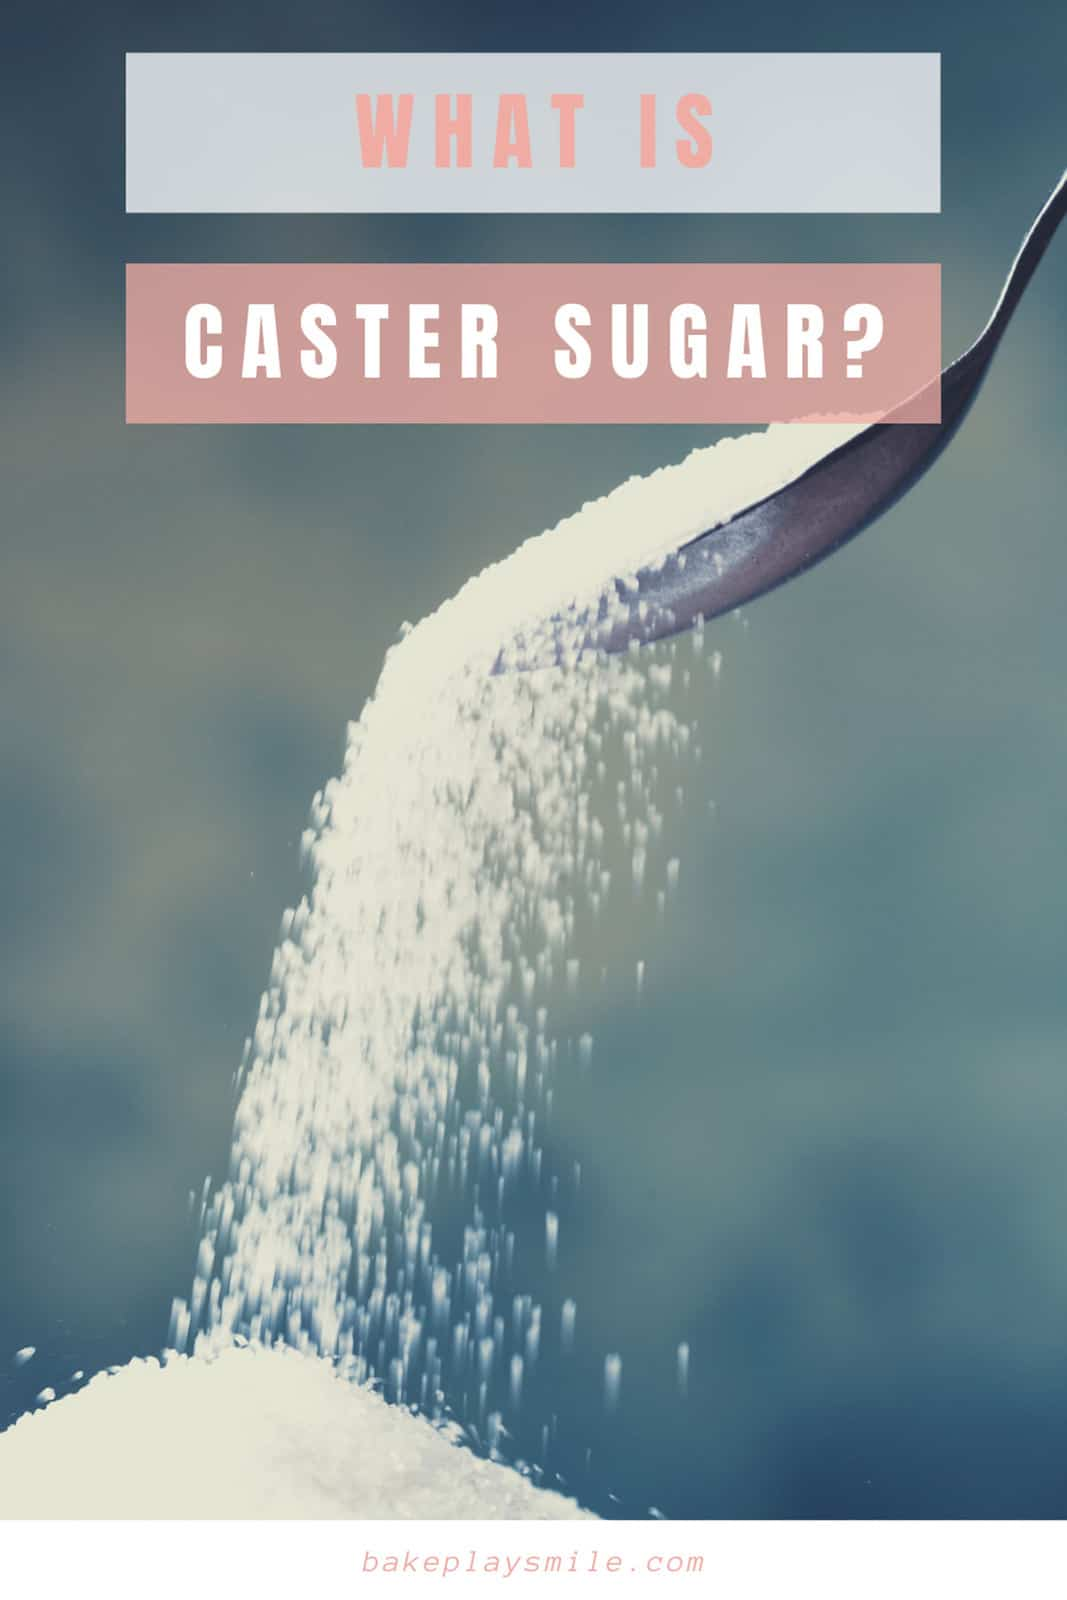 A Pinterest image with the text 'What is caster sugar?'